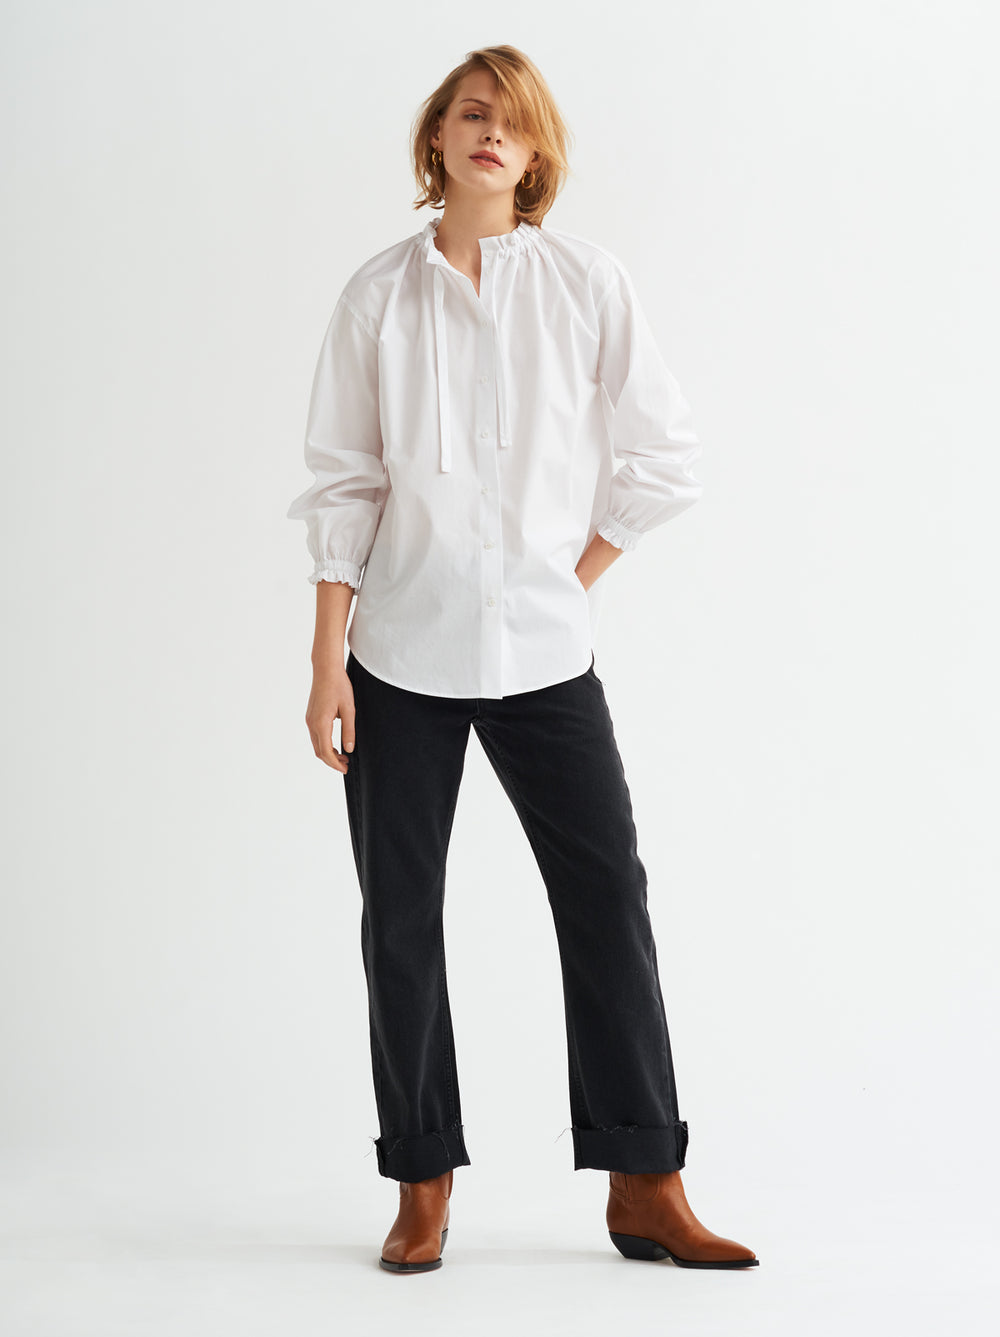 490abc953fa Lucinda White Gathered Neck Cotton Shirt by KITRI Studio ...